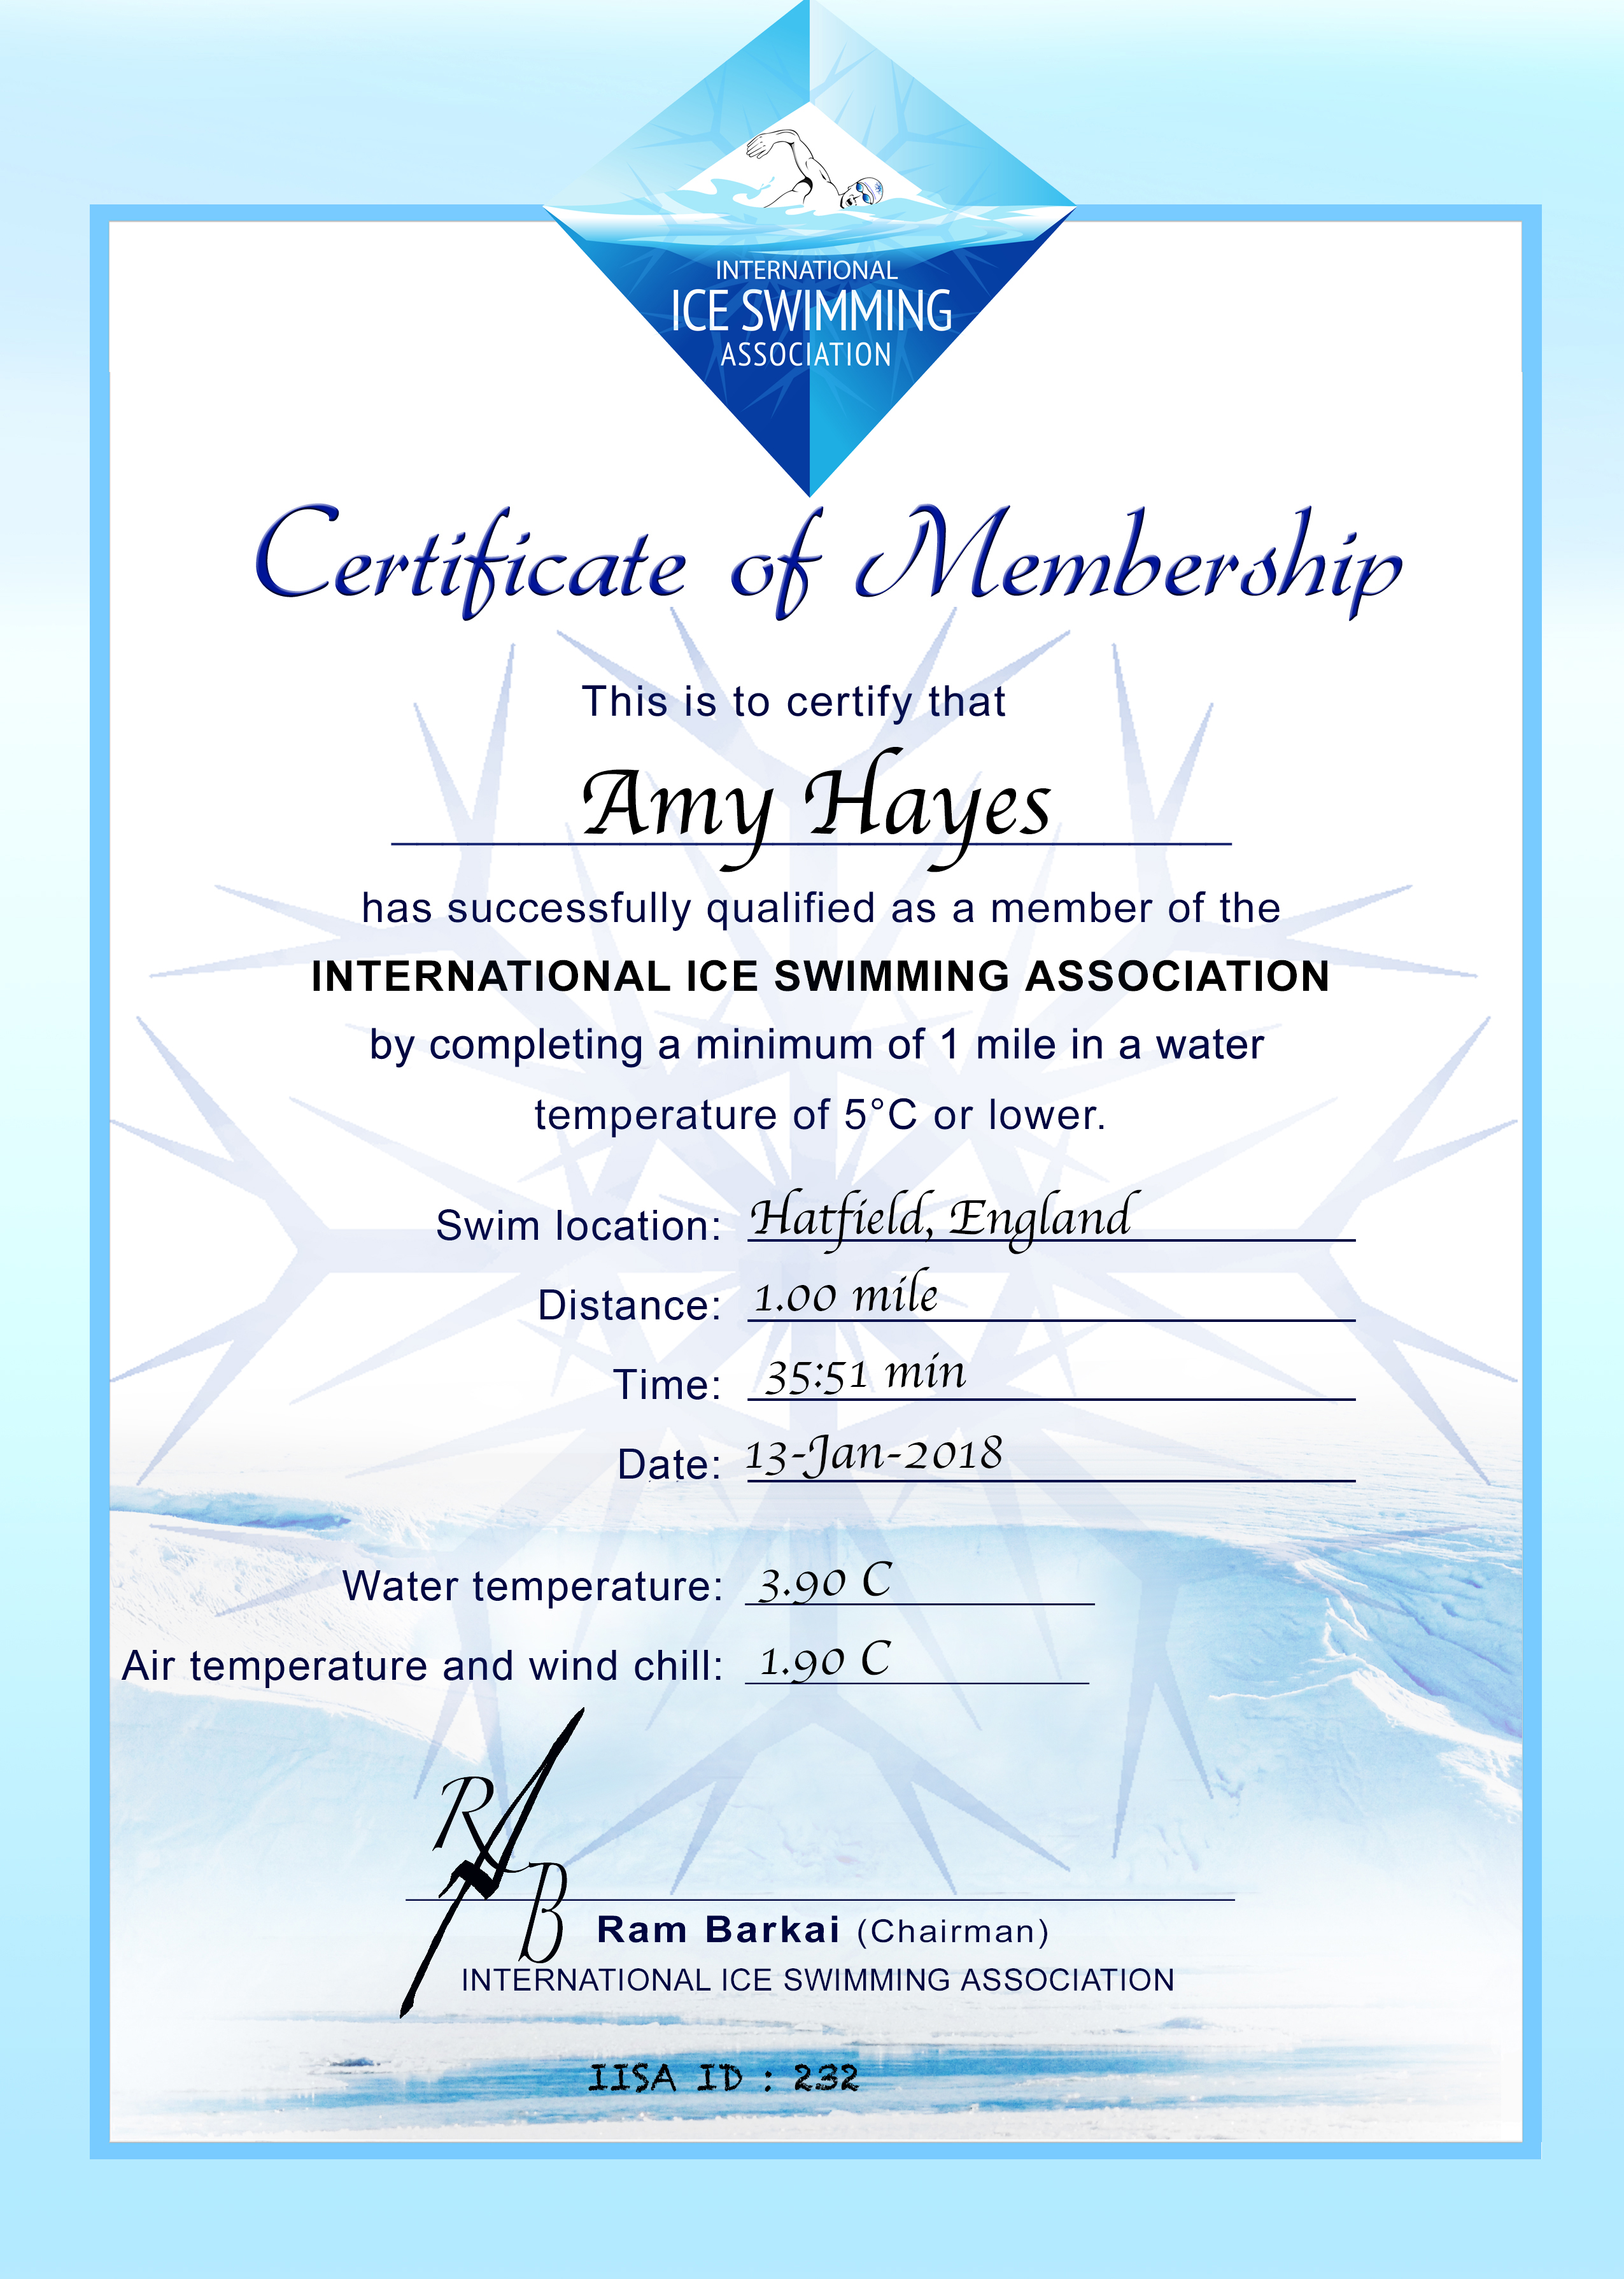 Ice Mile Certificate - Amy Hayes